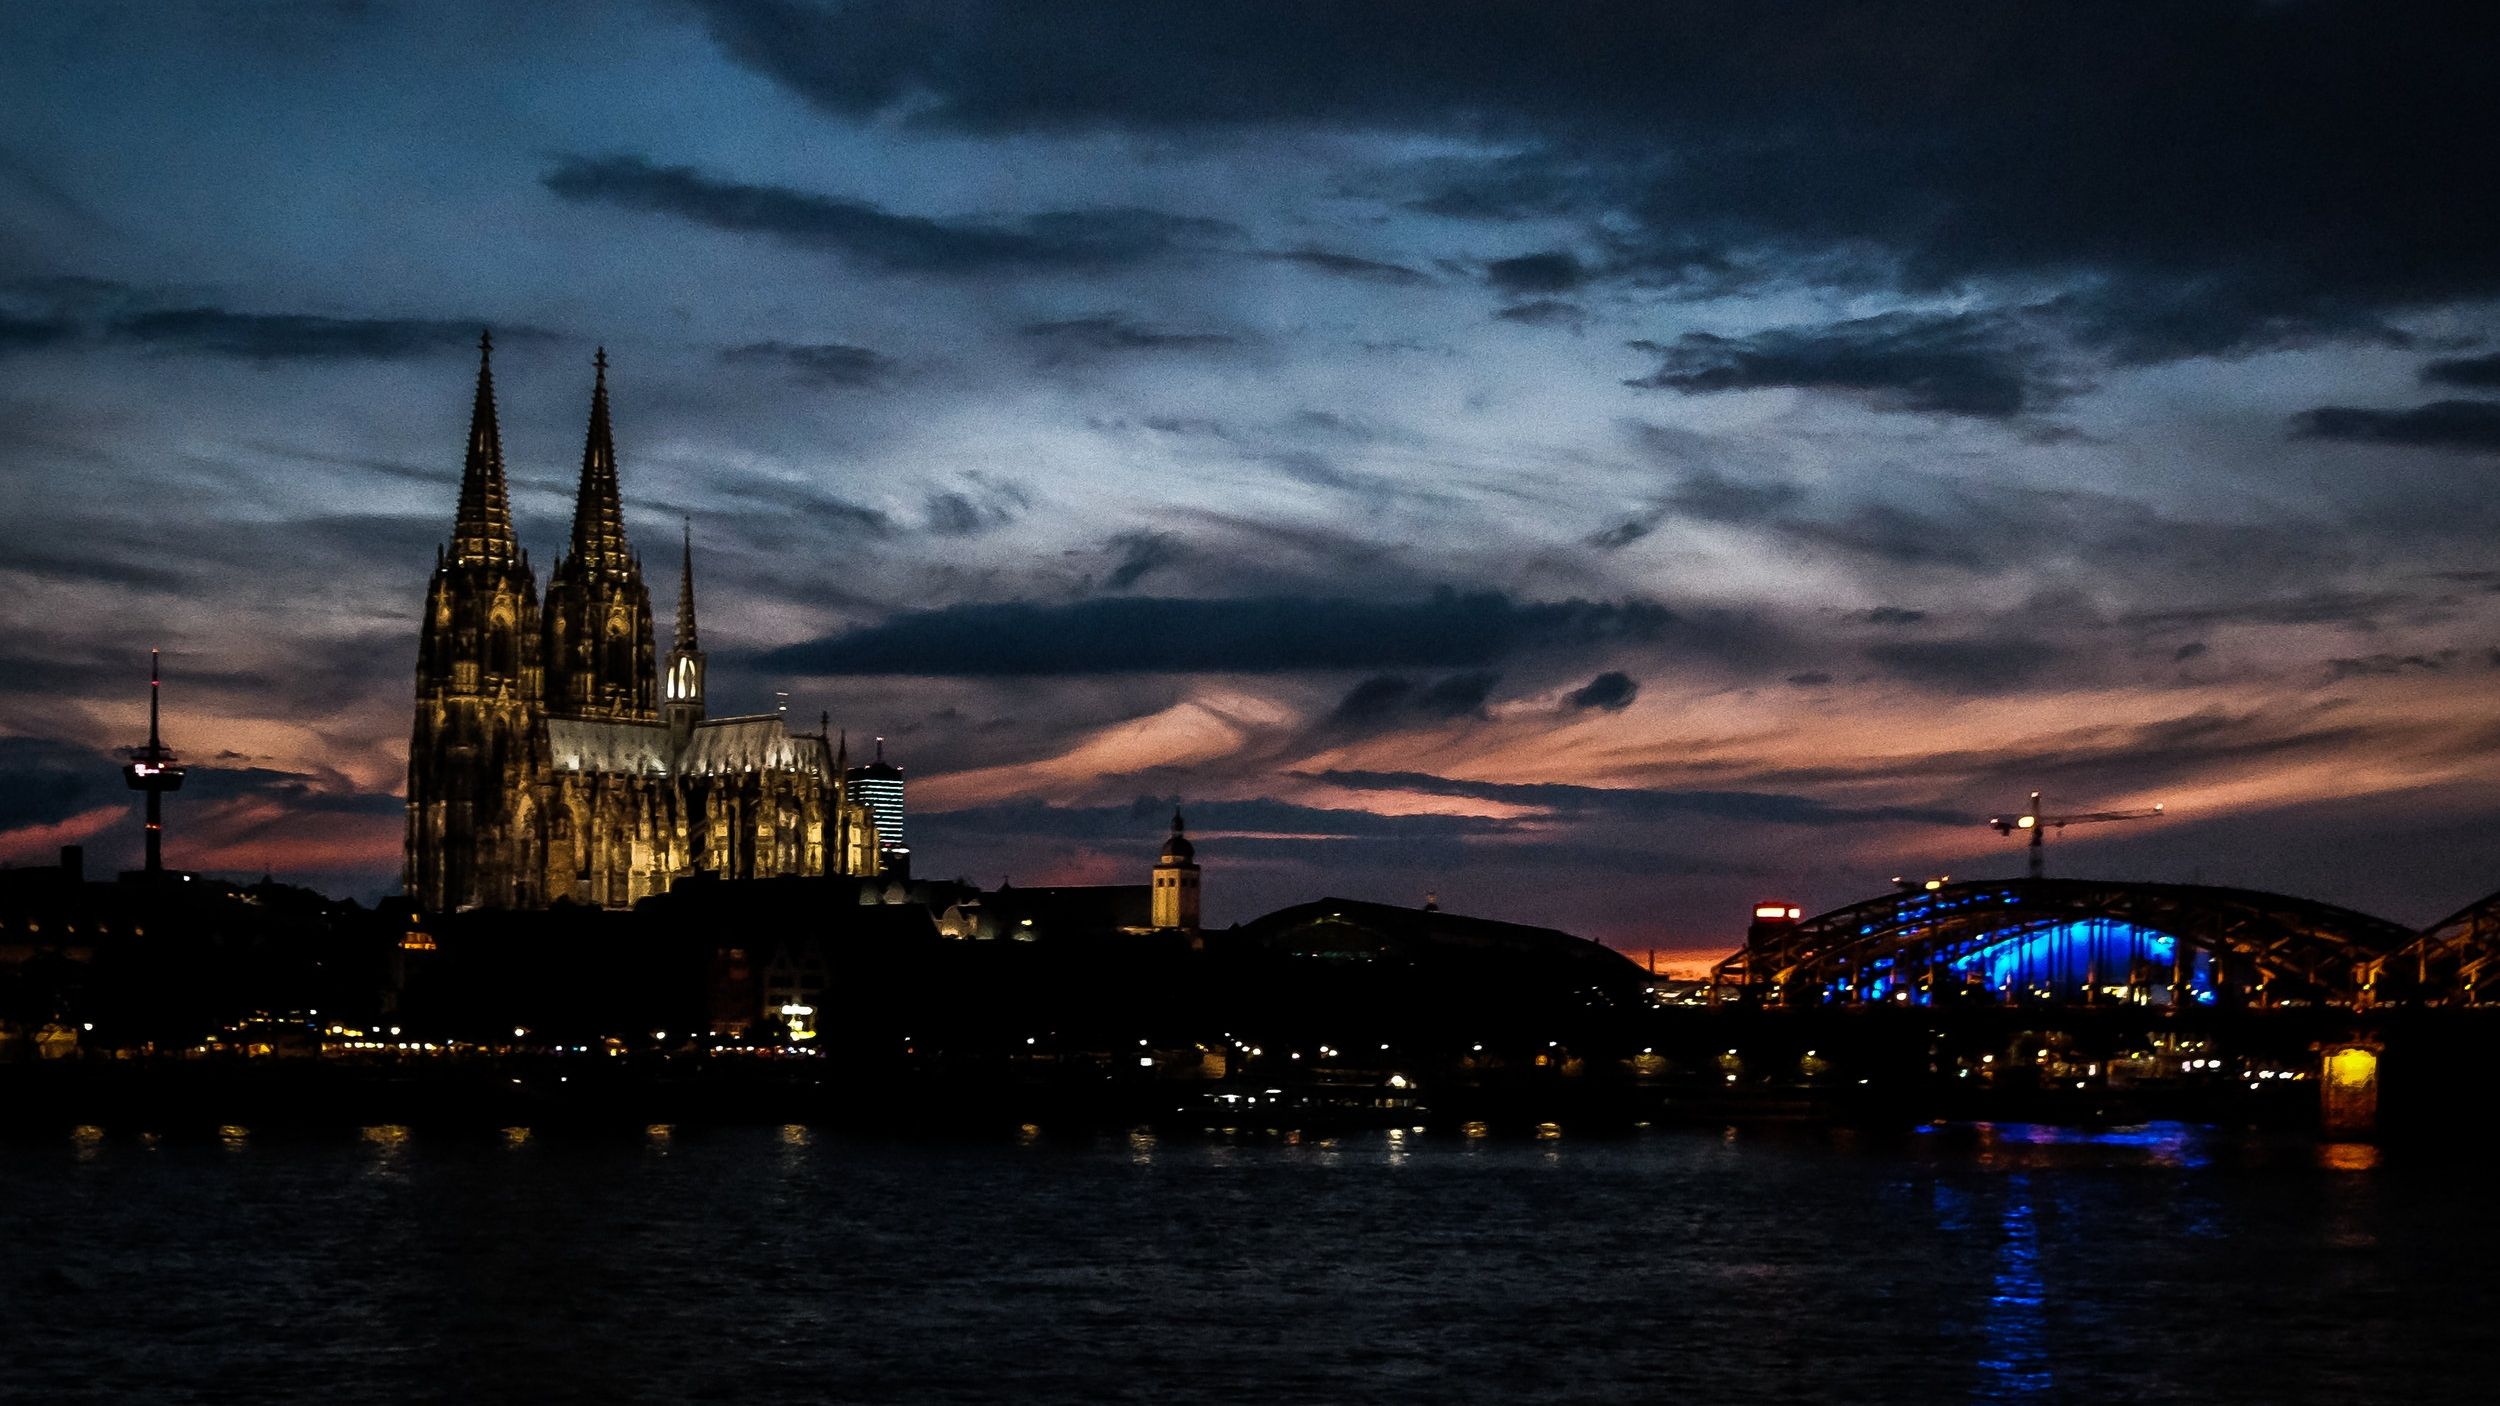 Cologne across the Mighty Rhine